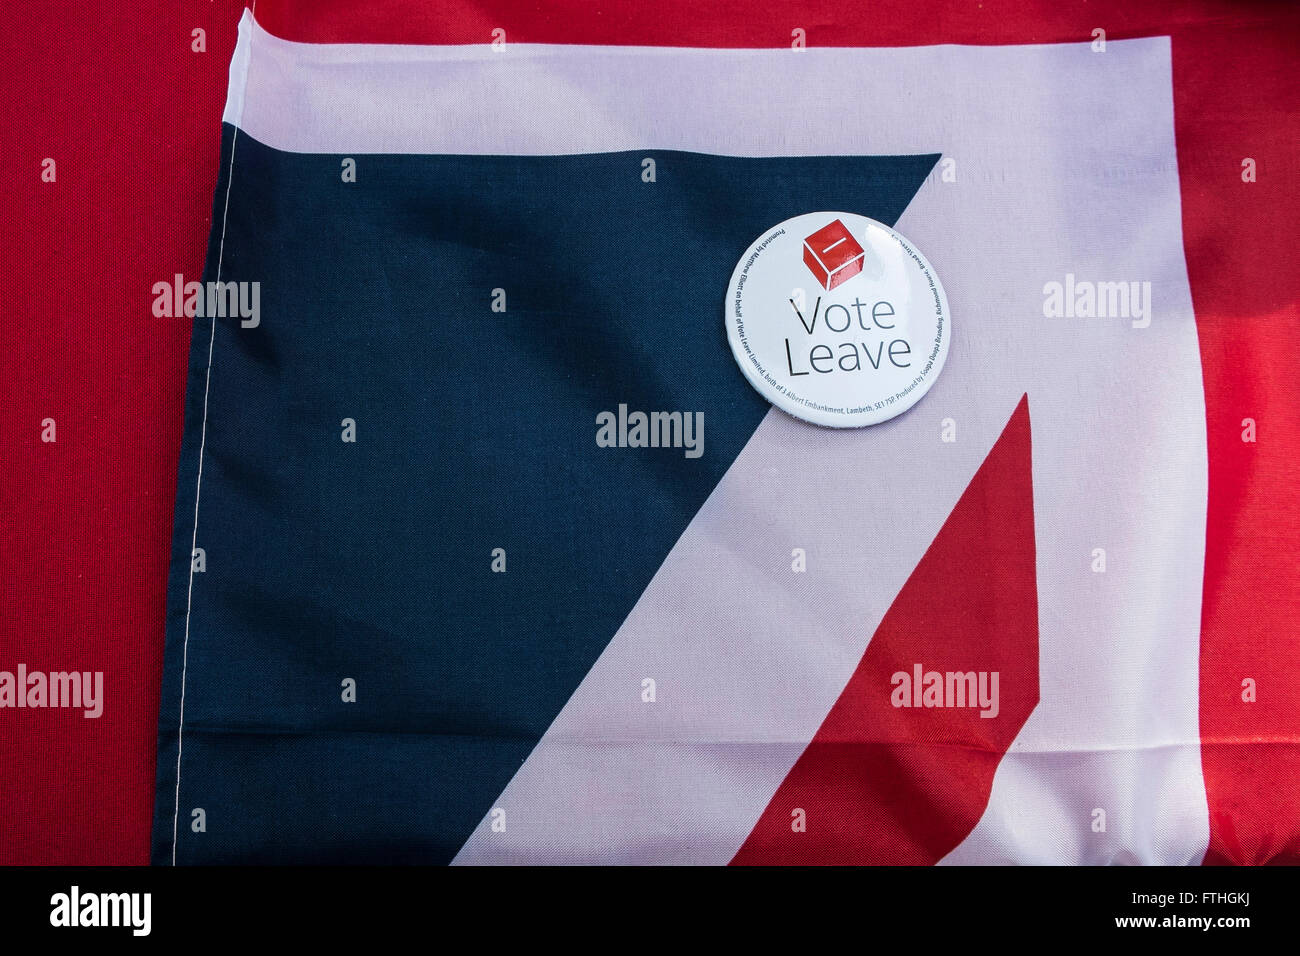 A badge supporting the UK exit from the European Union rests on a folded Union Flag. - Stock Image